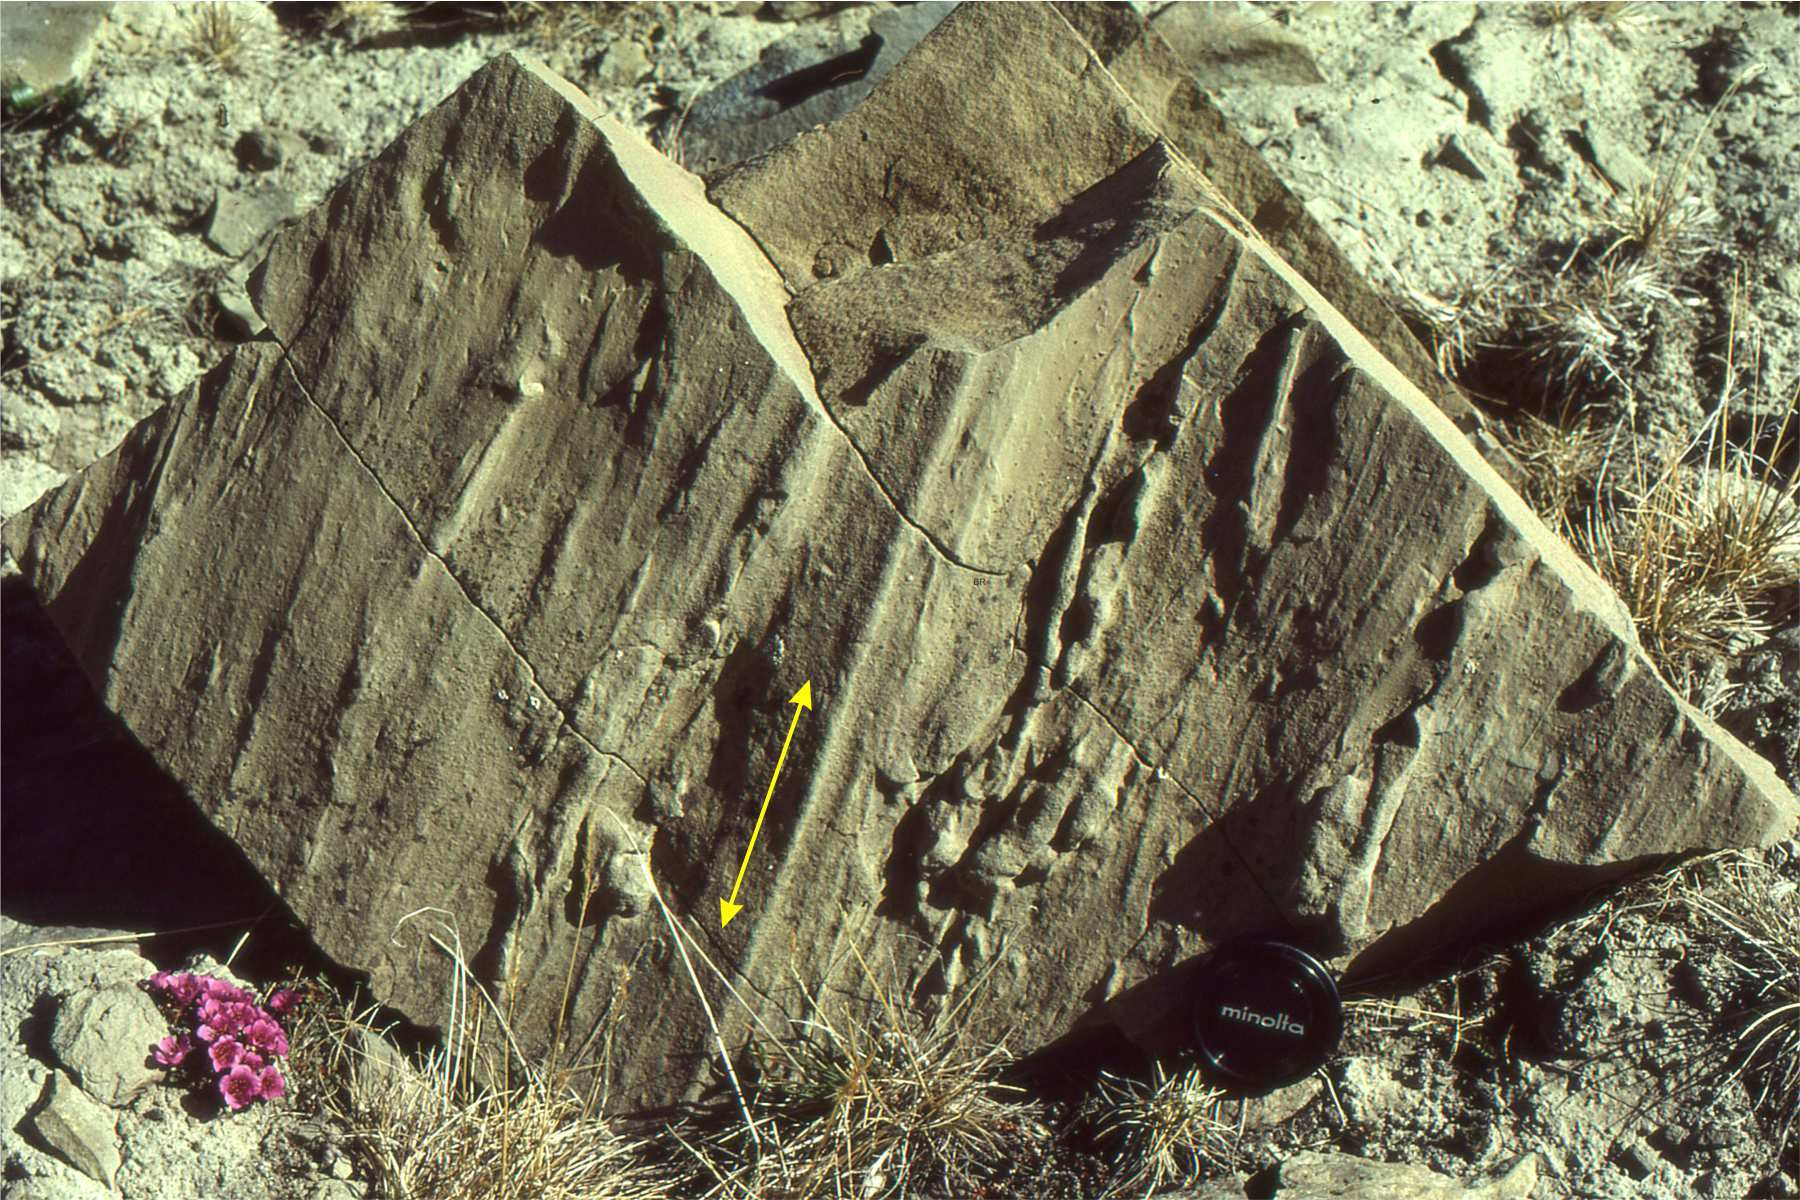 This image shows groove casts, which are elongated impressions in the rock. These are oriented up-down.